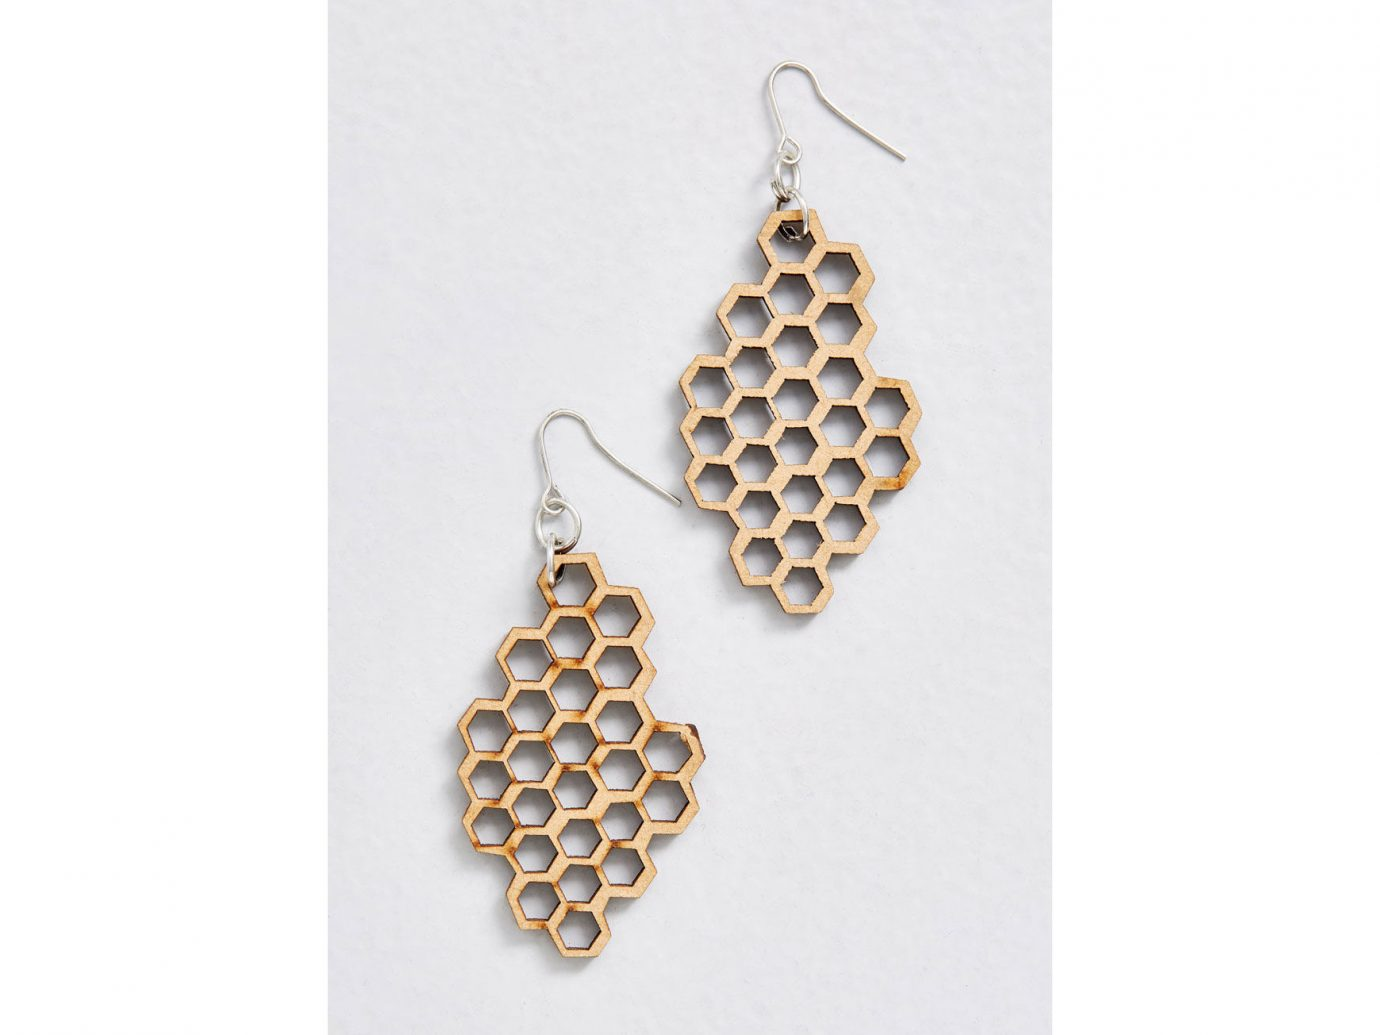 Honey Comb Wooden Earrings